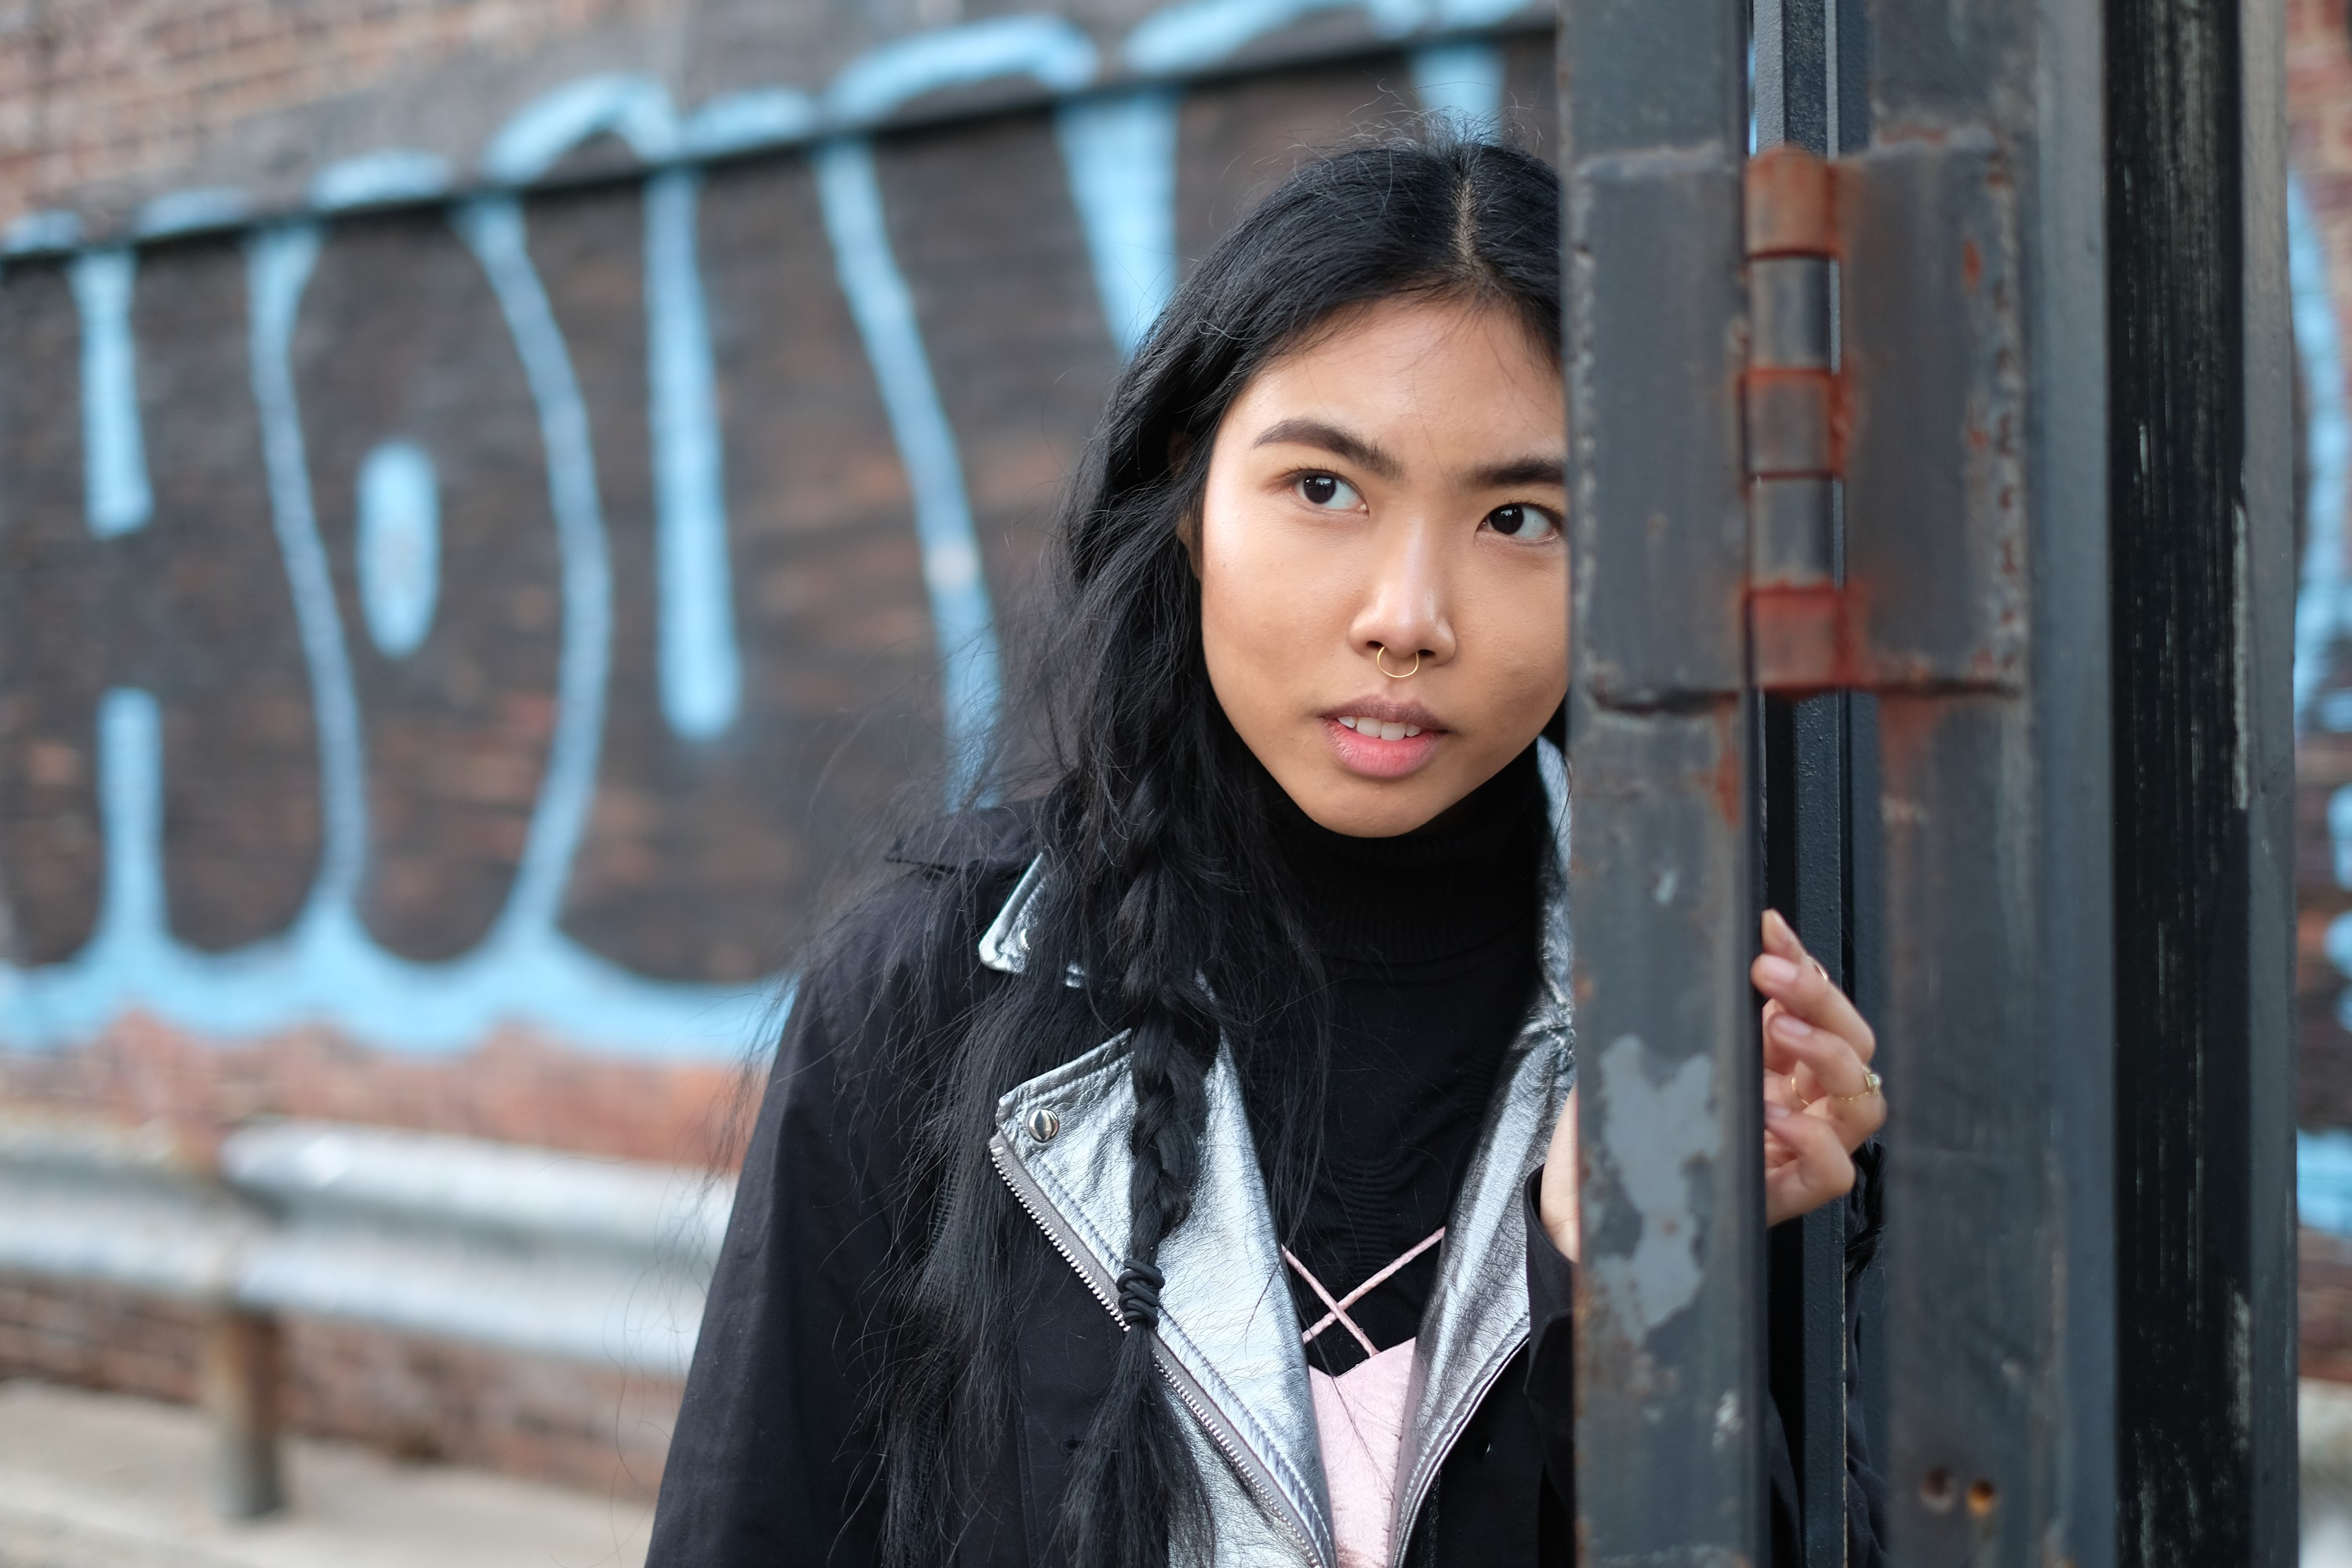 Asian girl by iron fence and graffiti